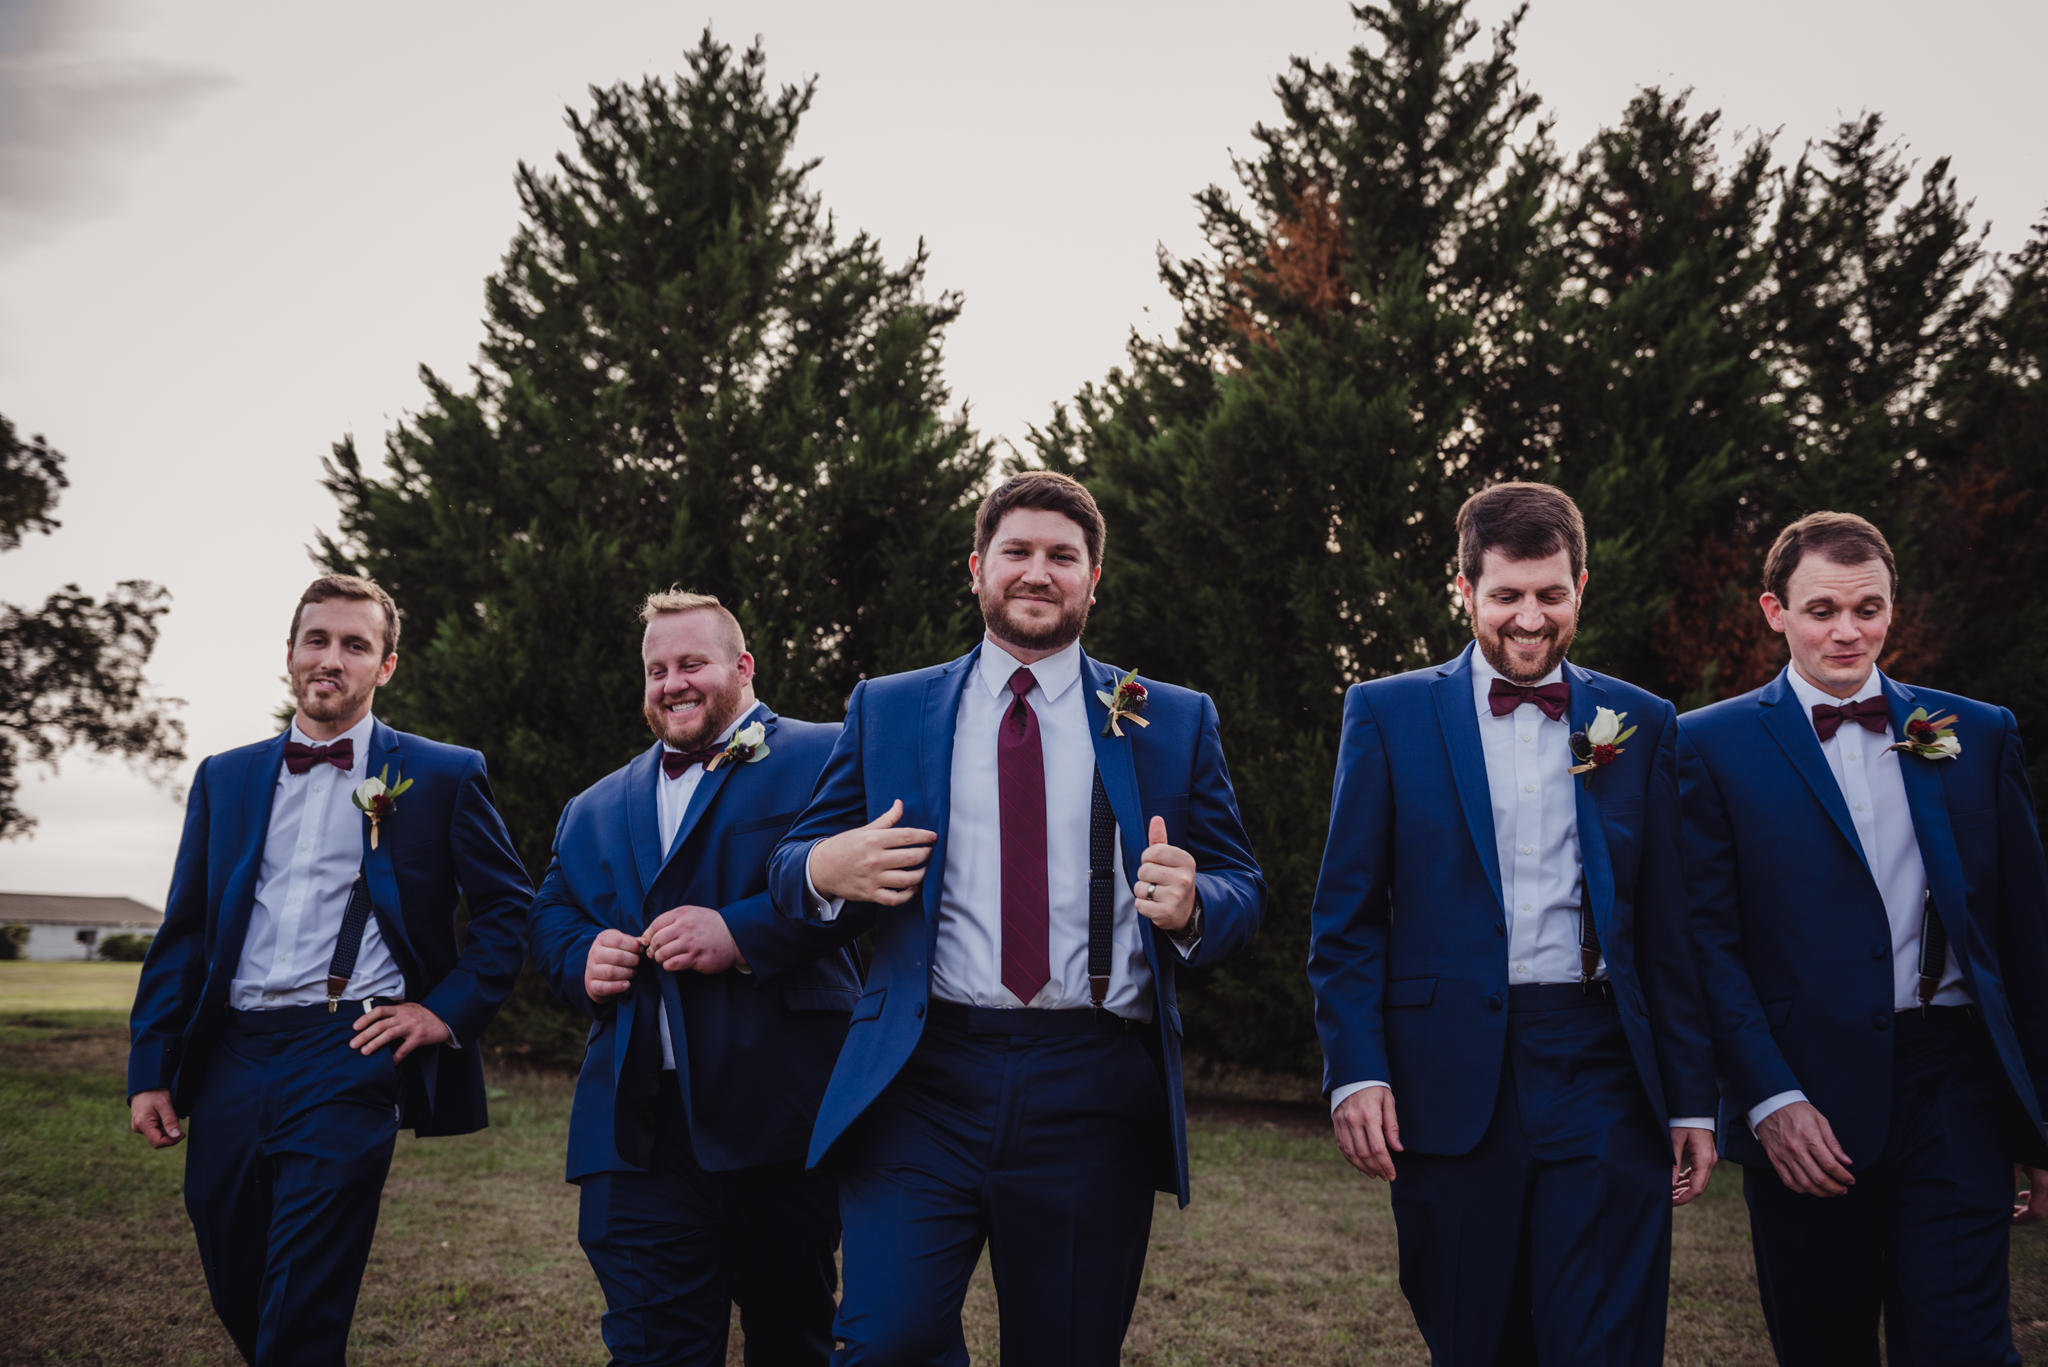 the-groomsmen-walking-towards-the-camera.jpg